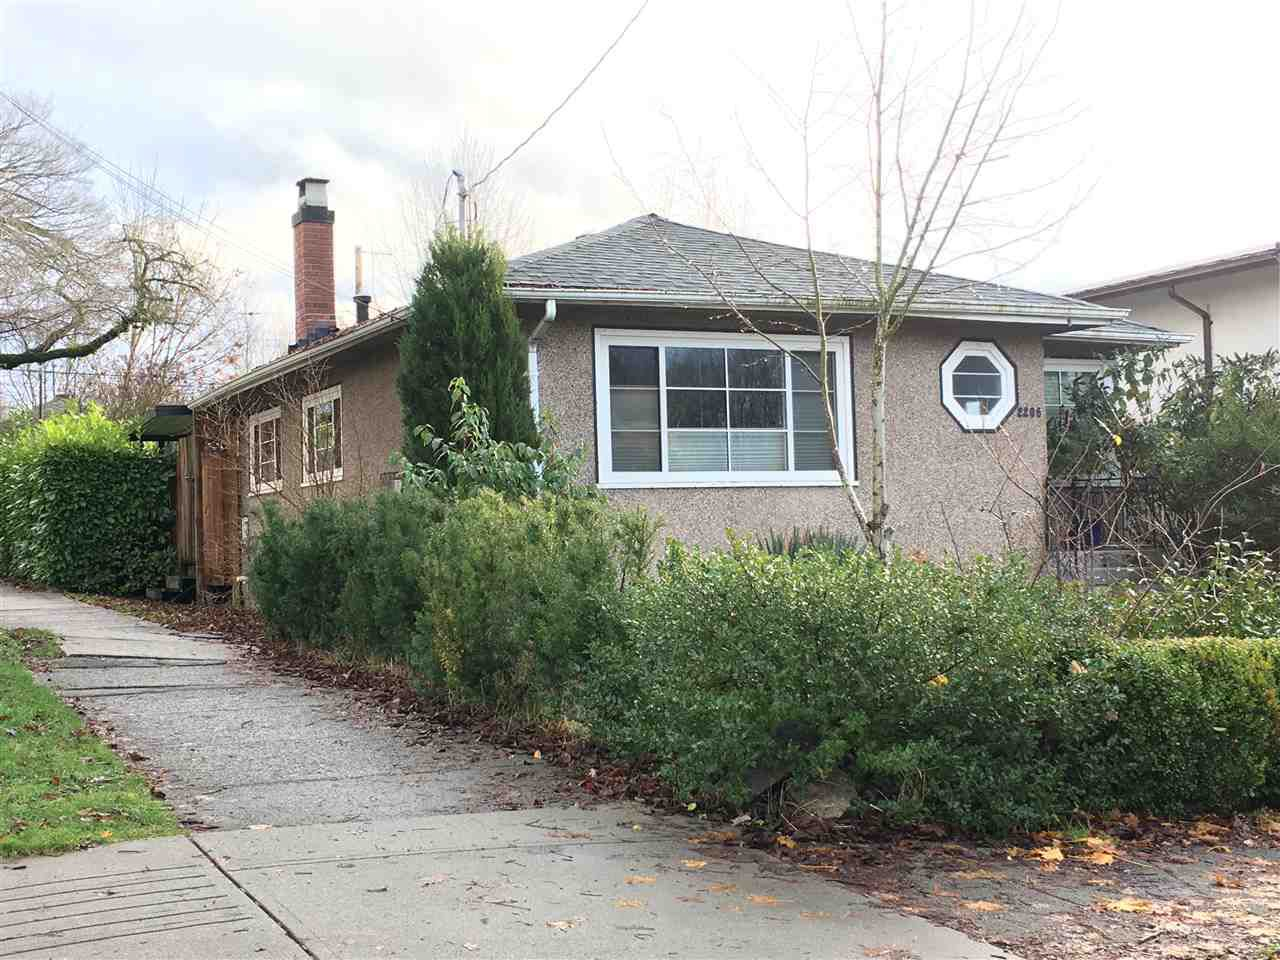 """Main Photo: 2206 GARDEN Drive in Vancouver: Grandview VE House for sale in """"Grandview/Woodlands"""" (Vancouver East)  : MLS®# R2325881"""